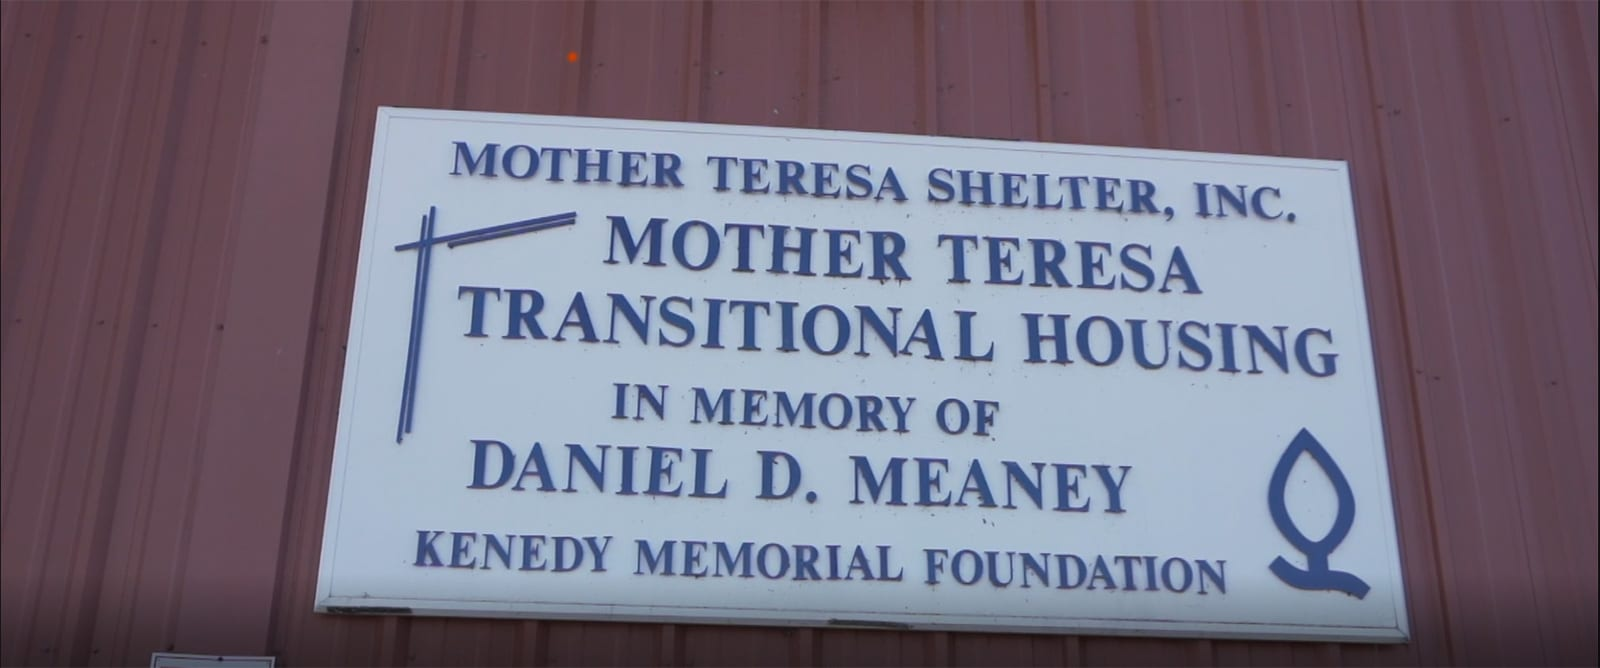 HMG Law Firm sponsored Thanksgiving for the Mother Teresa Men's Transitional Home